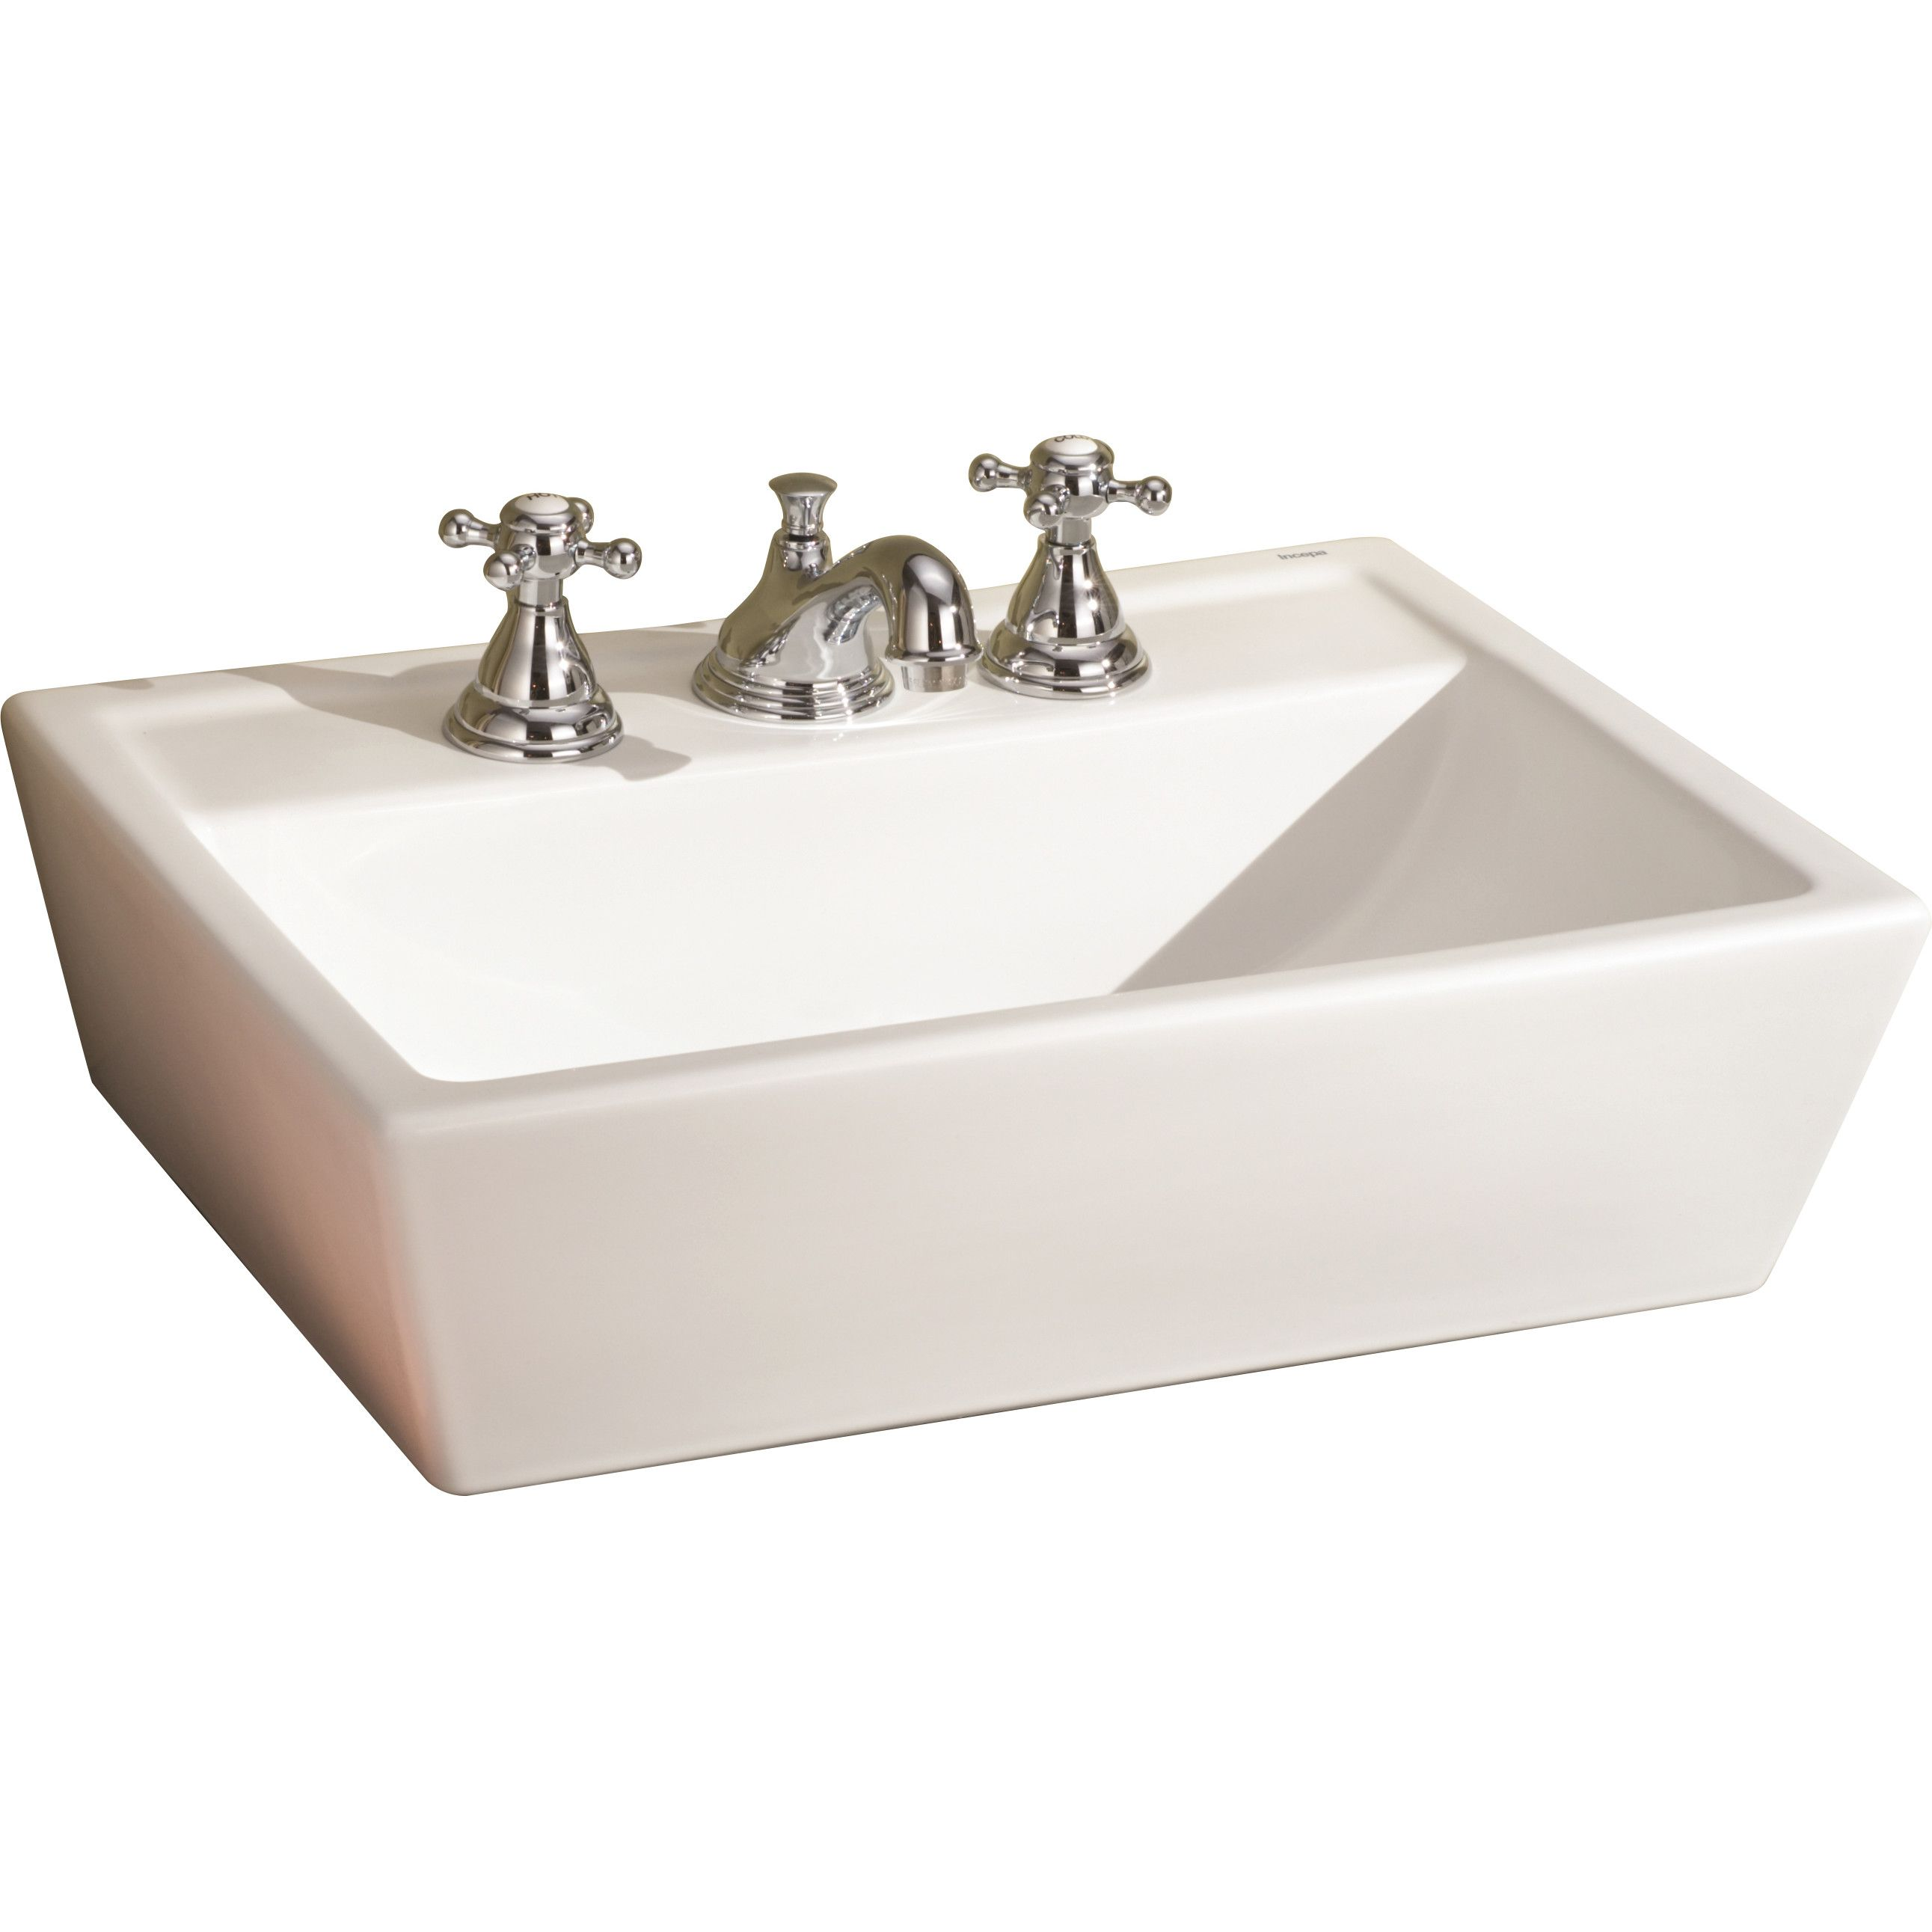 Sentire ceramic rectangular vessel bathroom sink also sinks and